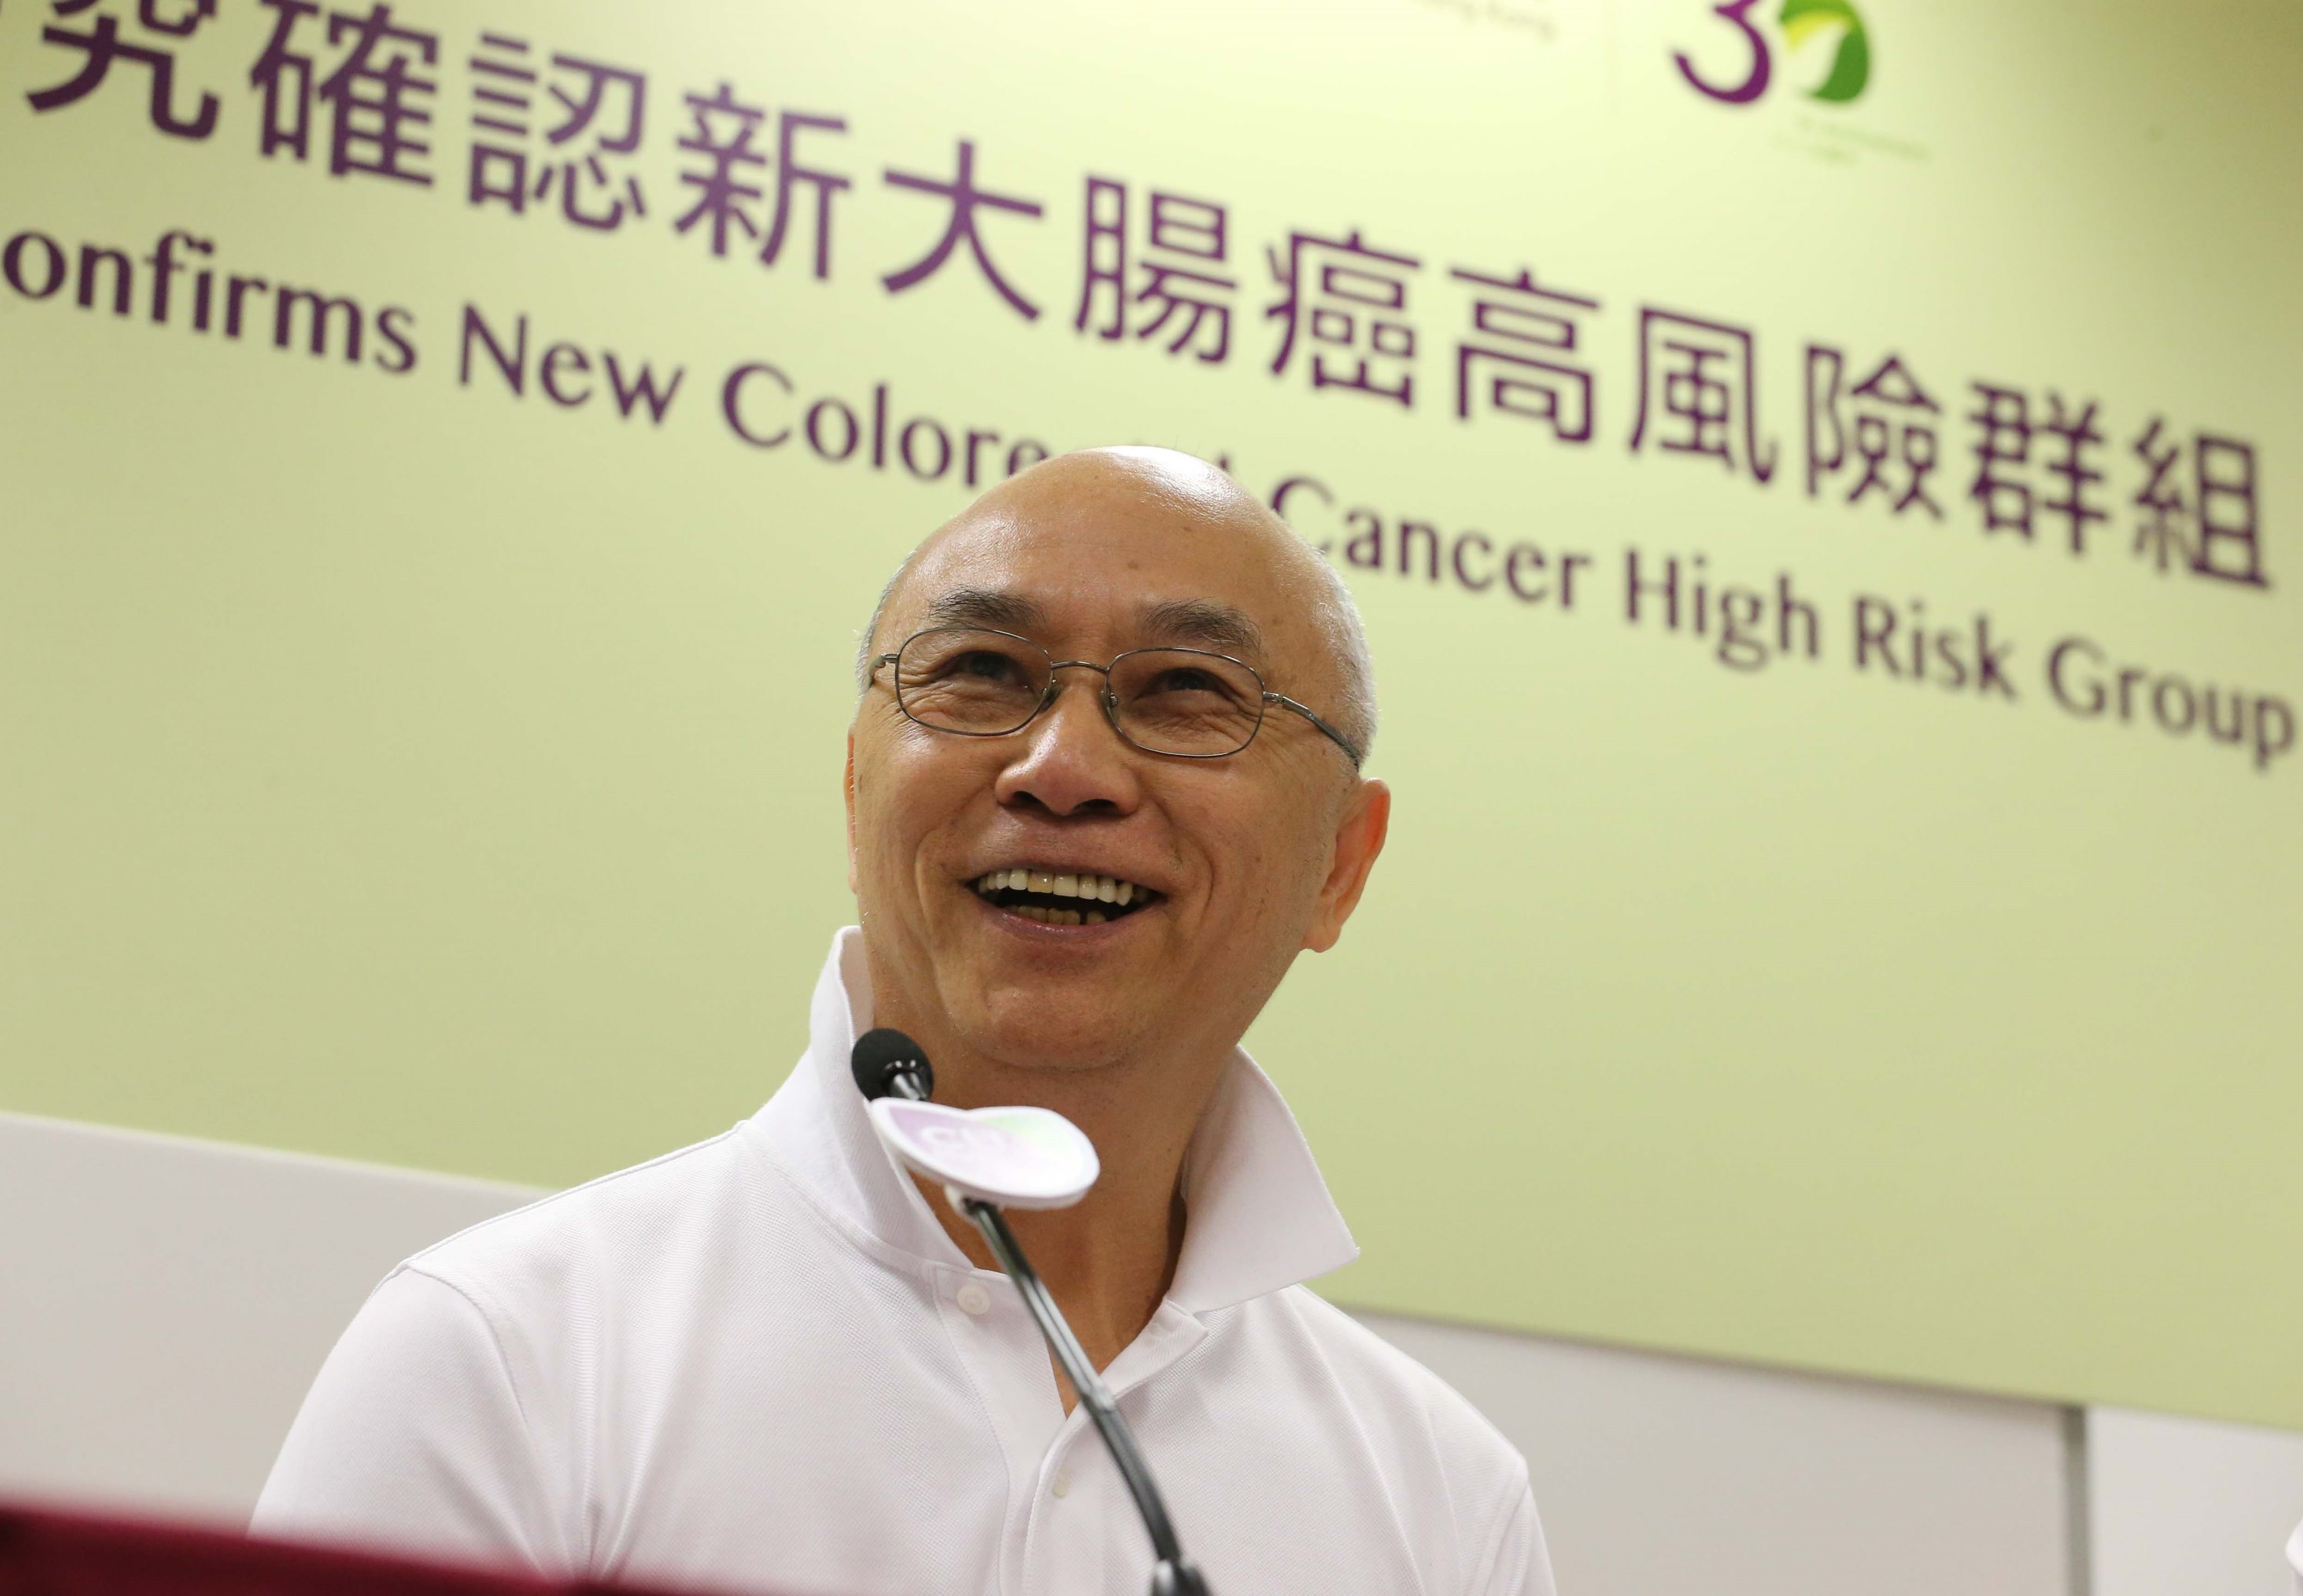 Mr Poon says he joined the study after his younger brother confirmed having advanced adenoma. After colonoscopy he was found having the same issue.